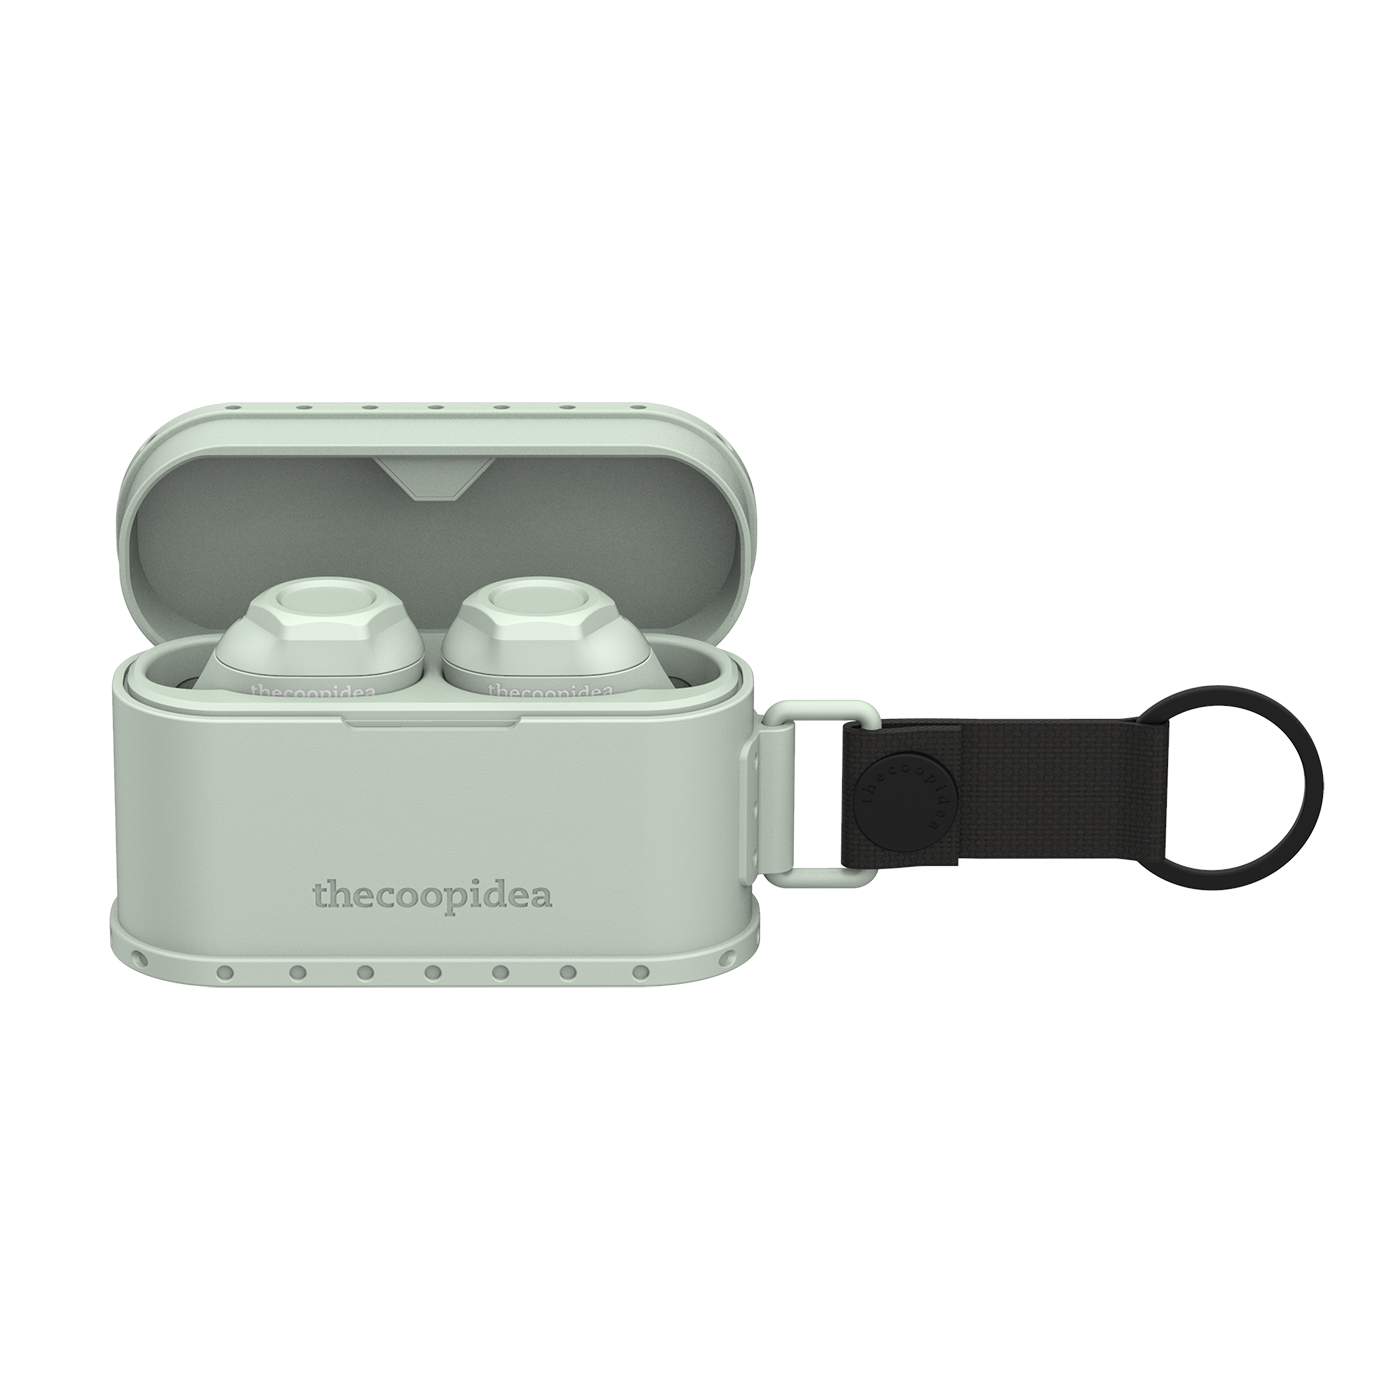 thecoopidea - CARGO 02 True Wireless Earbuds- Olive